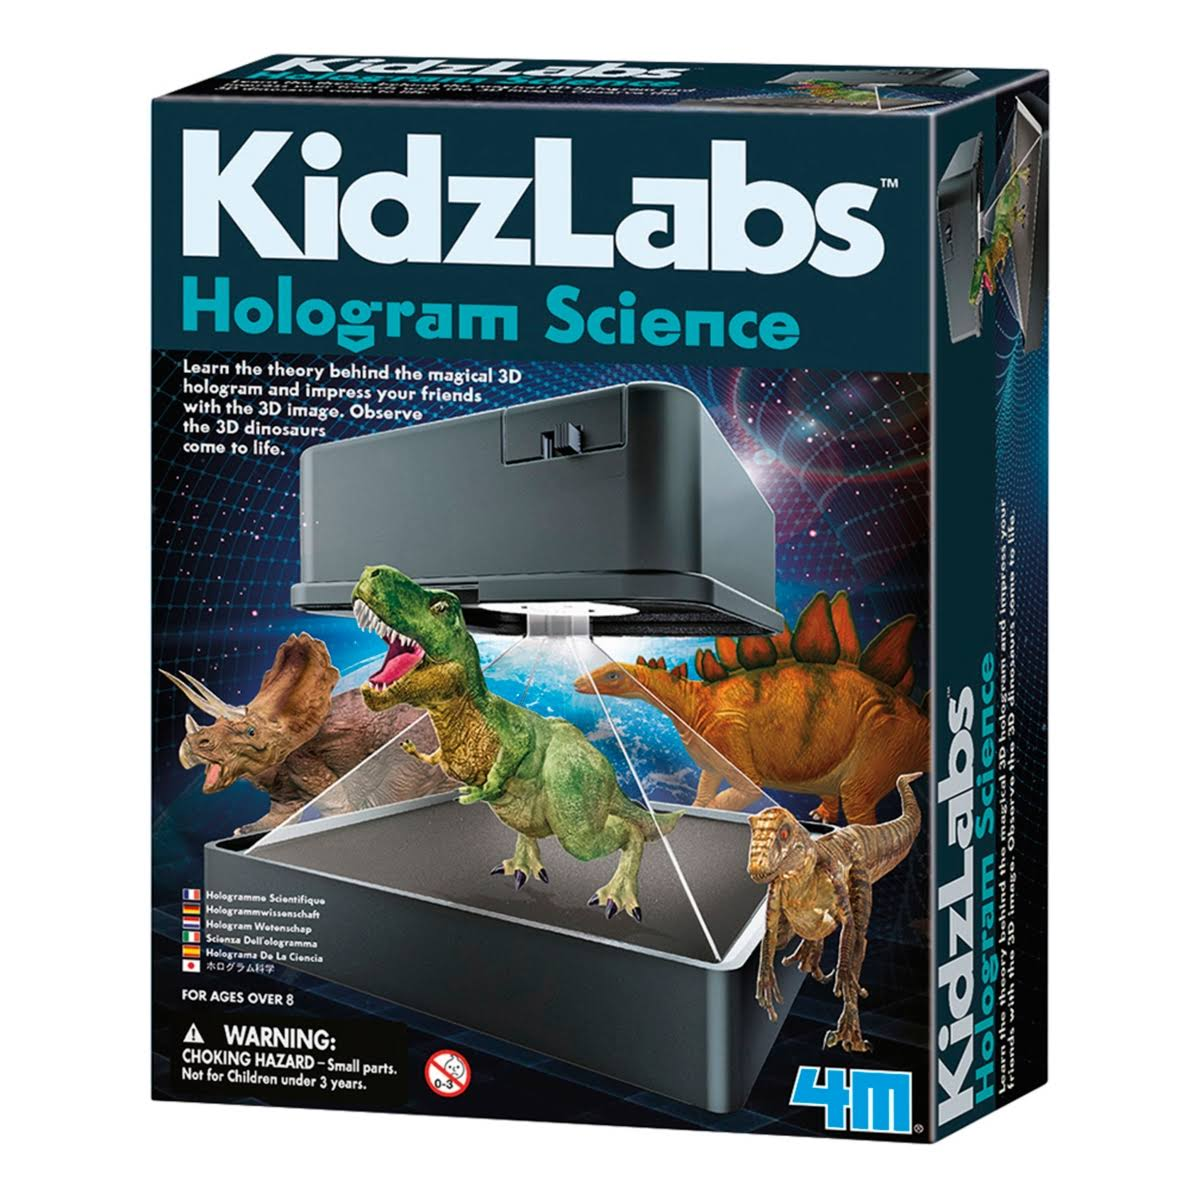 KidzLabs Hologram Projector Kids 3D Image Educational Science and Activity Kit